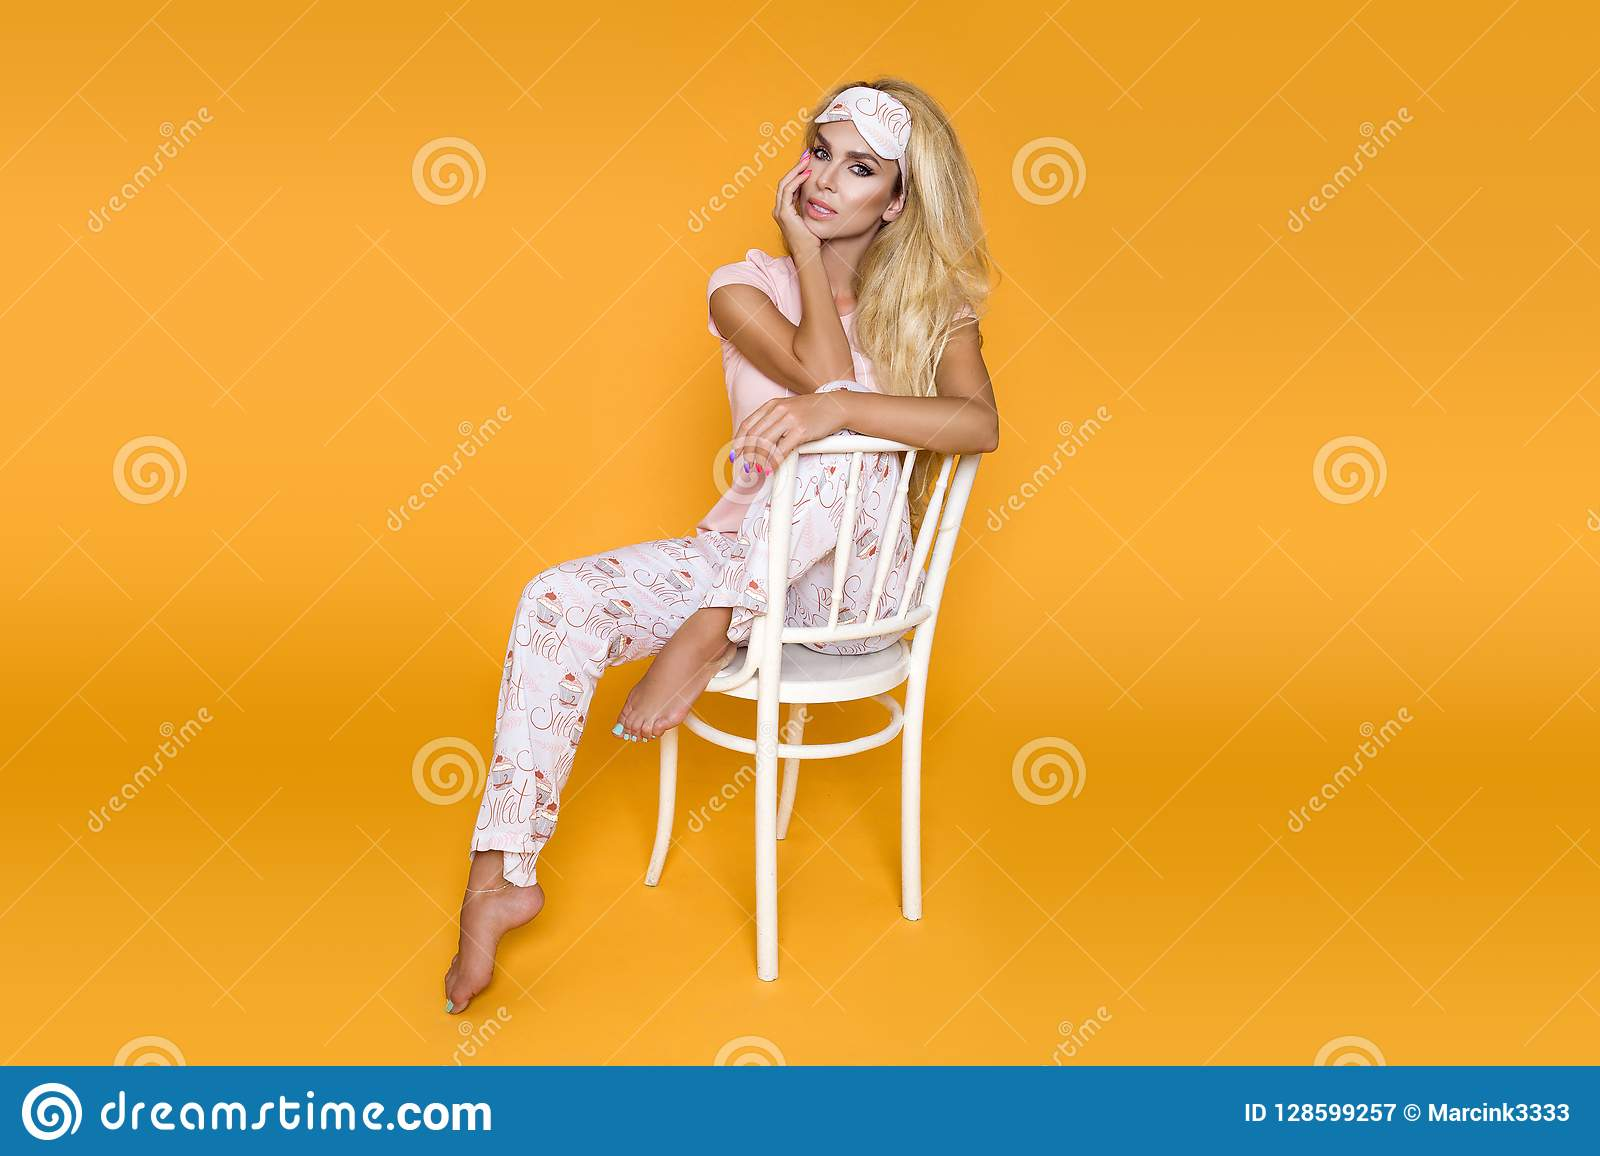 Beautiful blond woman in pajama on a yellow background in the studio.